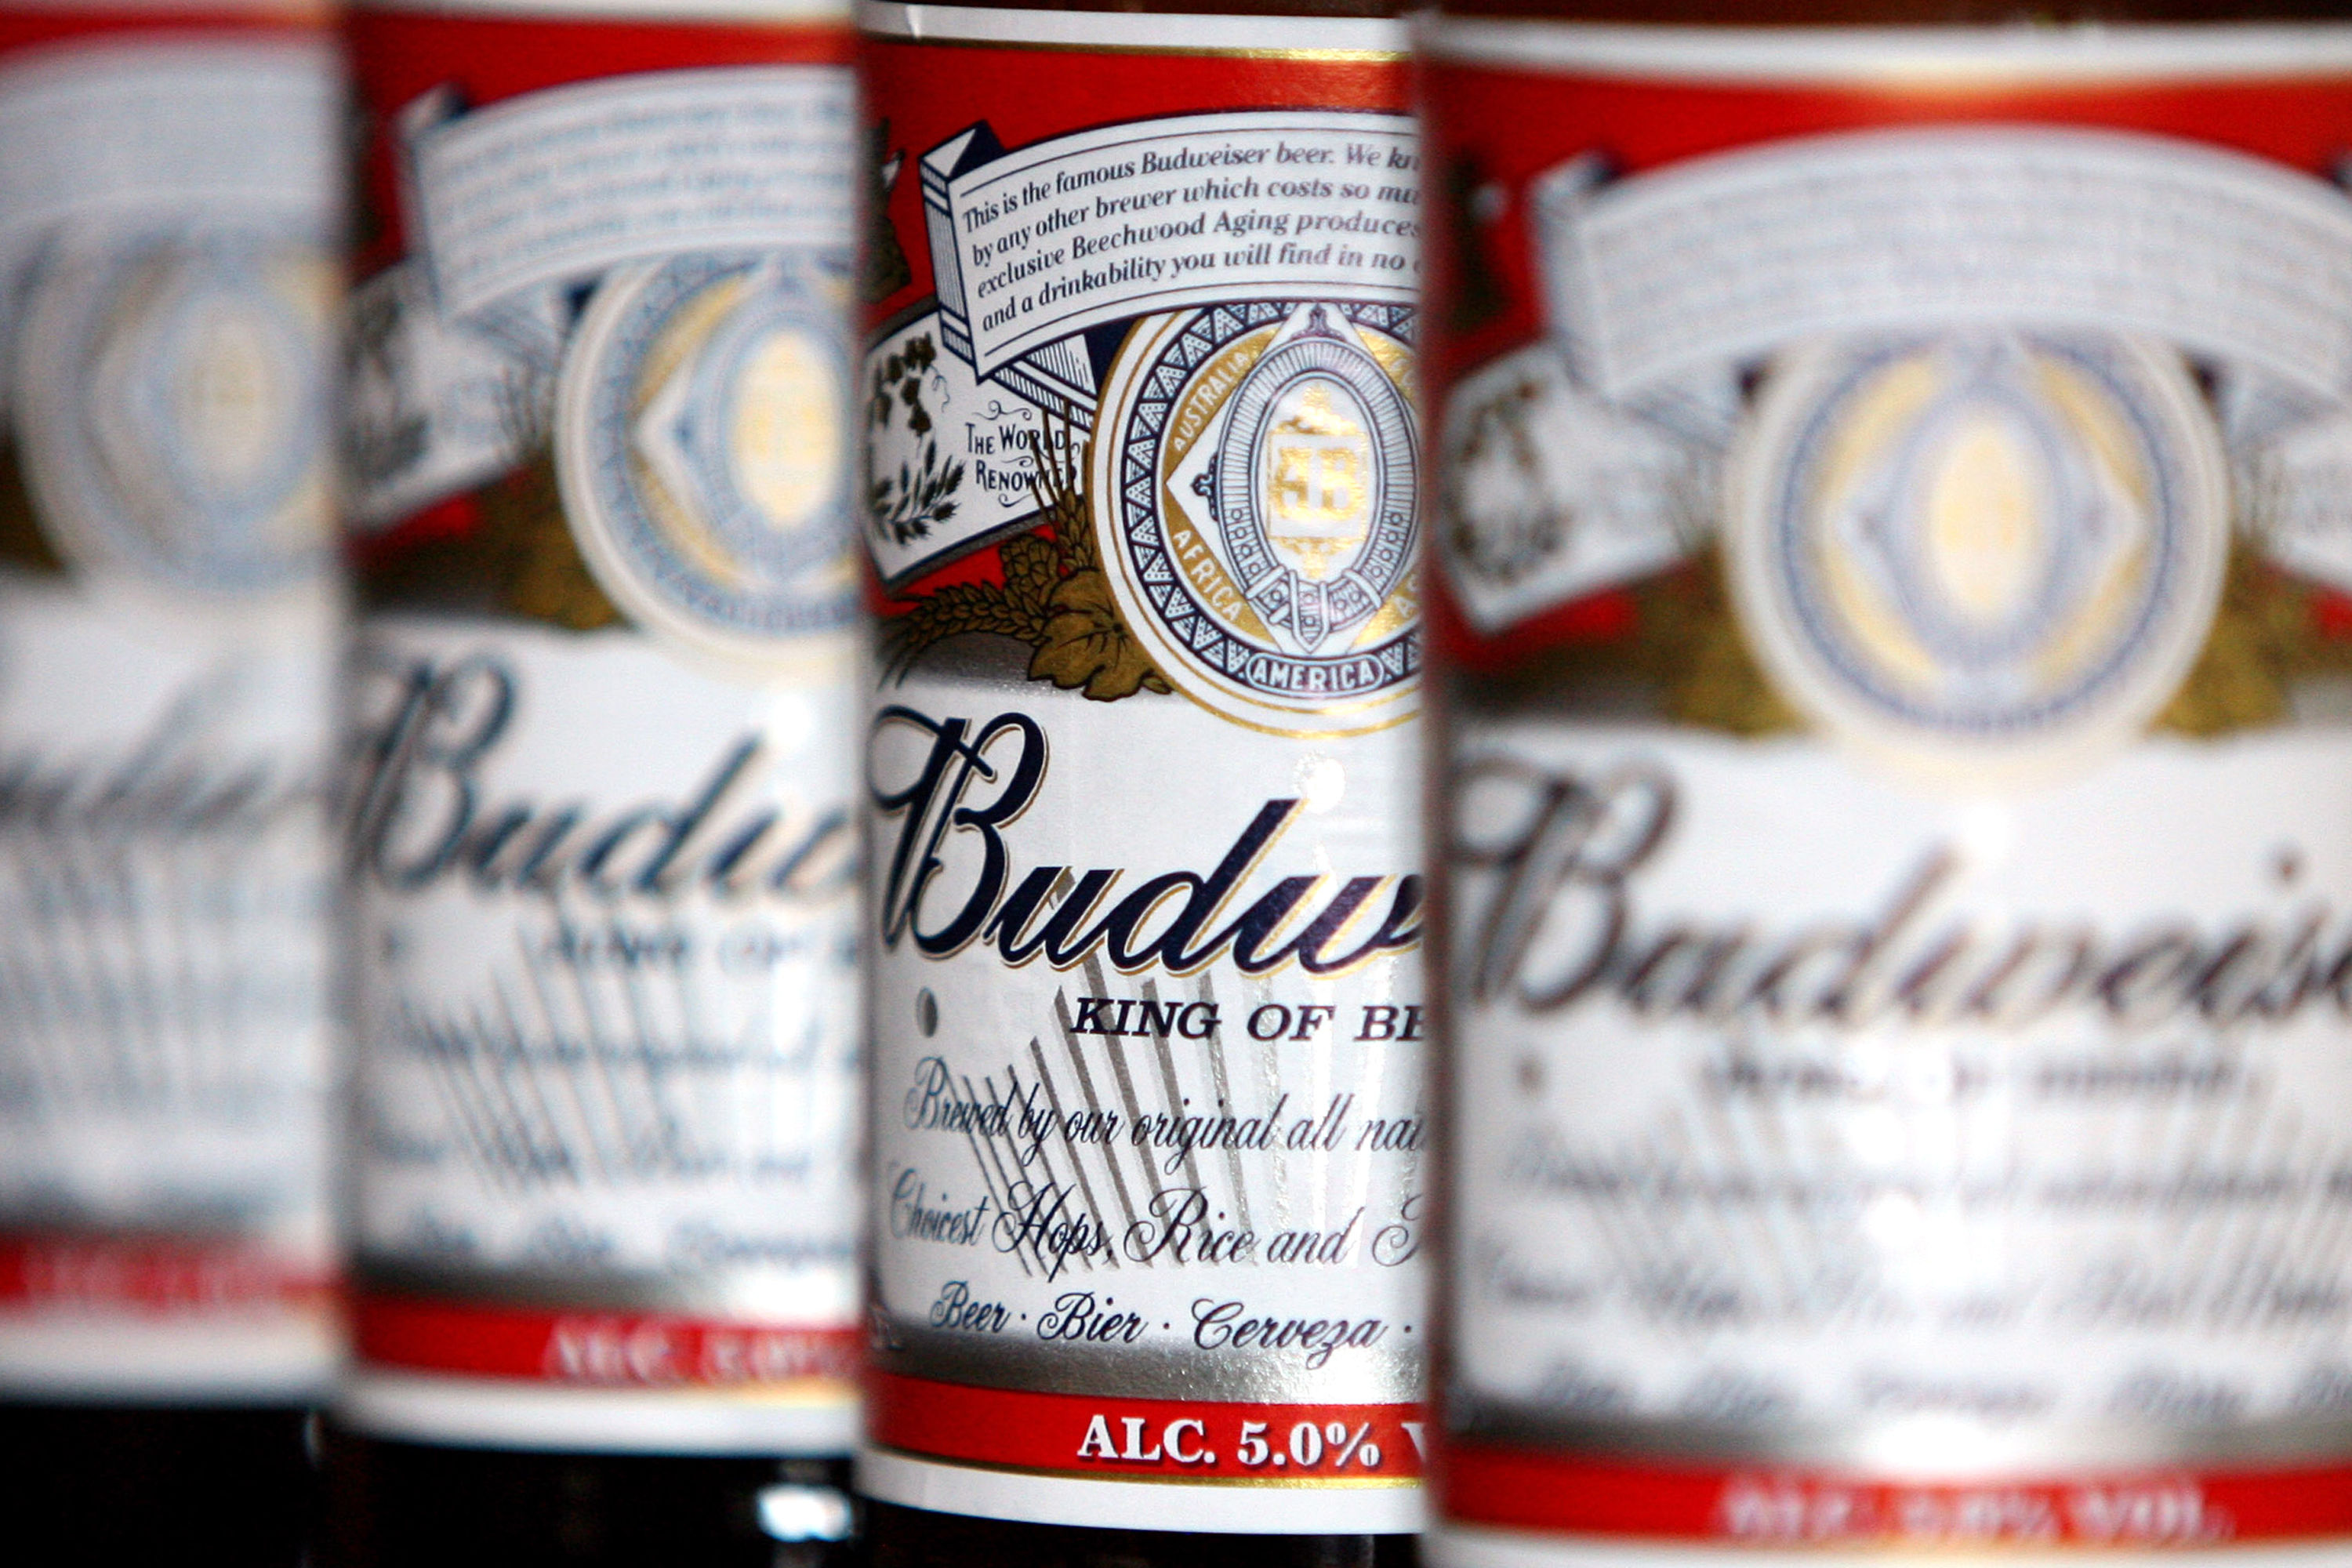 Budweiser's New Bottles Will Get You in the Holiday Spirit